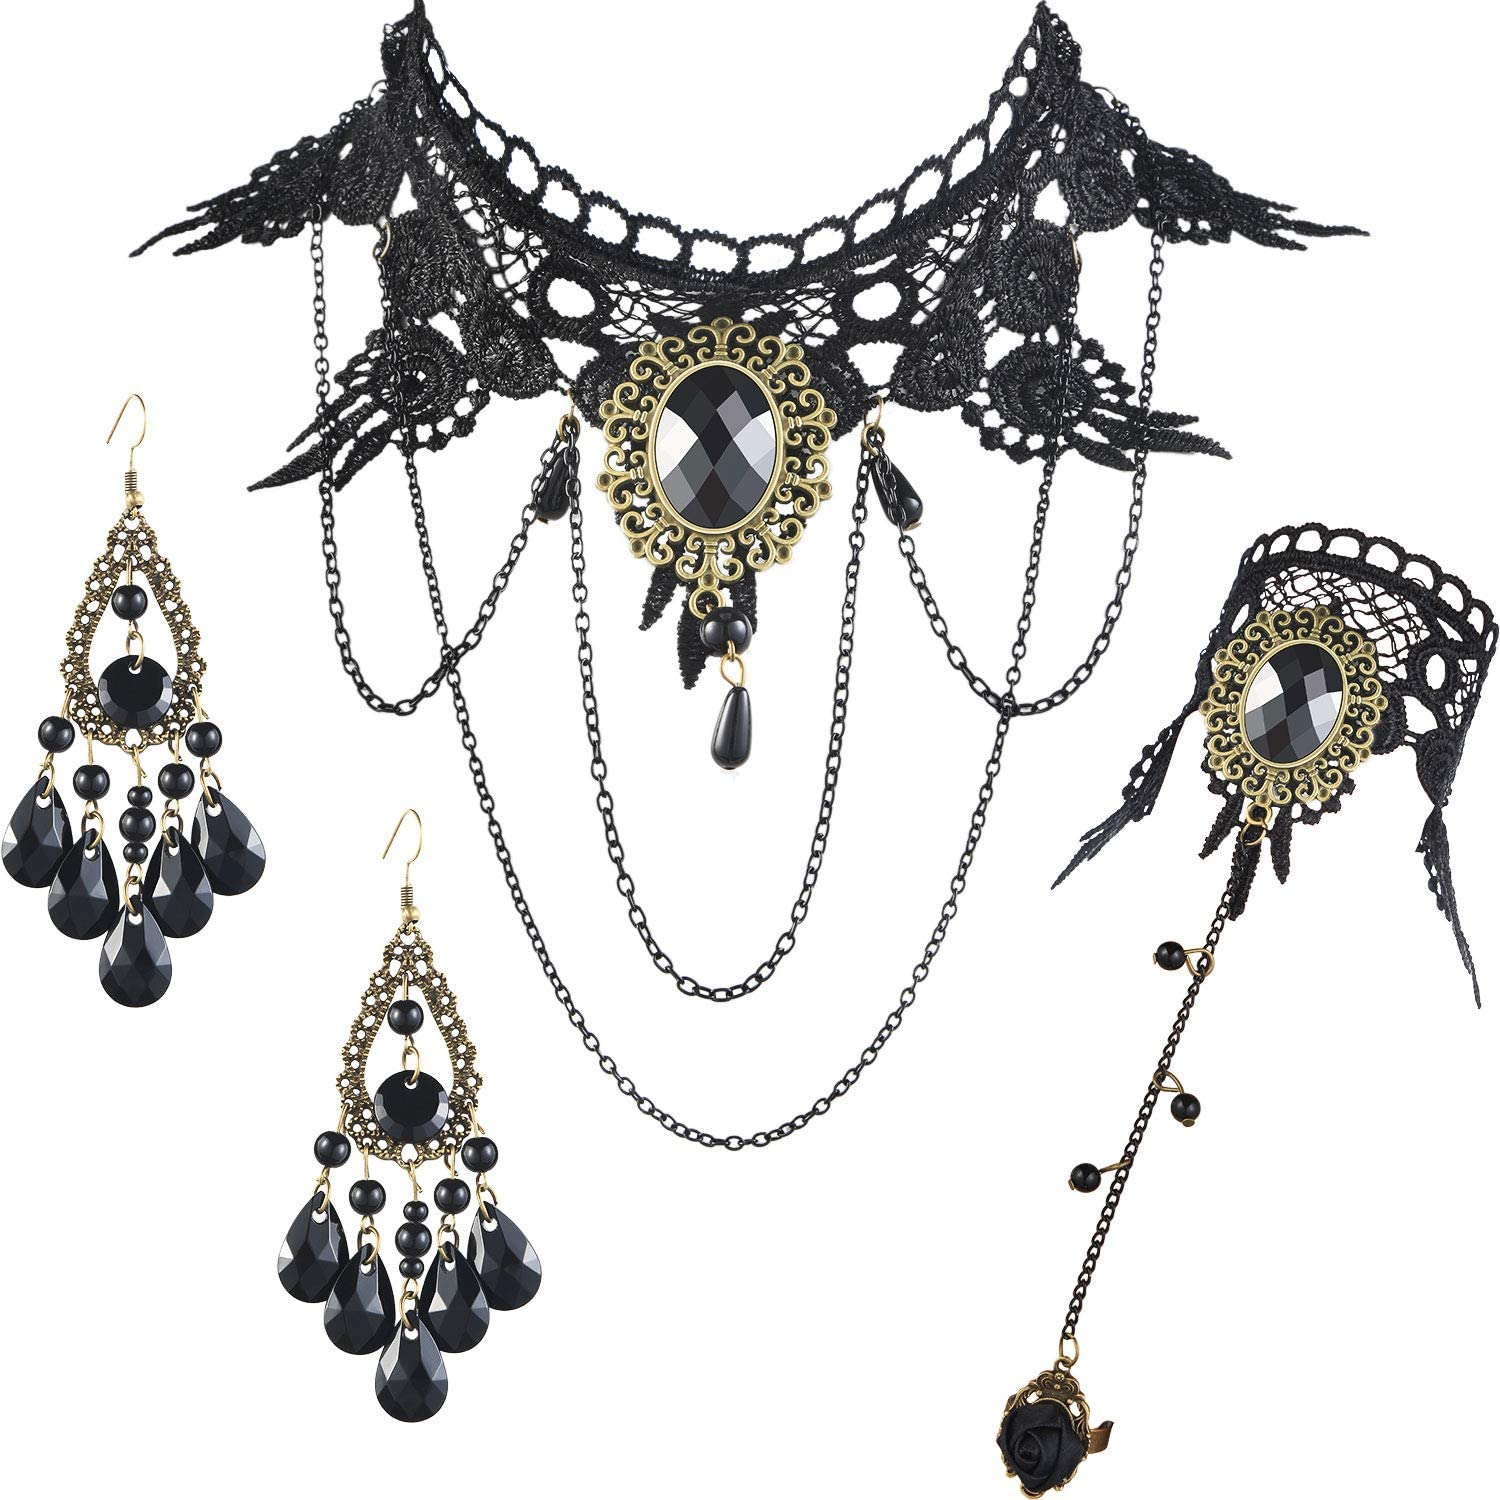 Black Choker Necklace Retro Gothic Lolita Style Jewelry with Vintage Lace Bracelet and Pendant Earrings for Halloween Costume